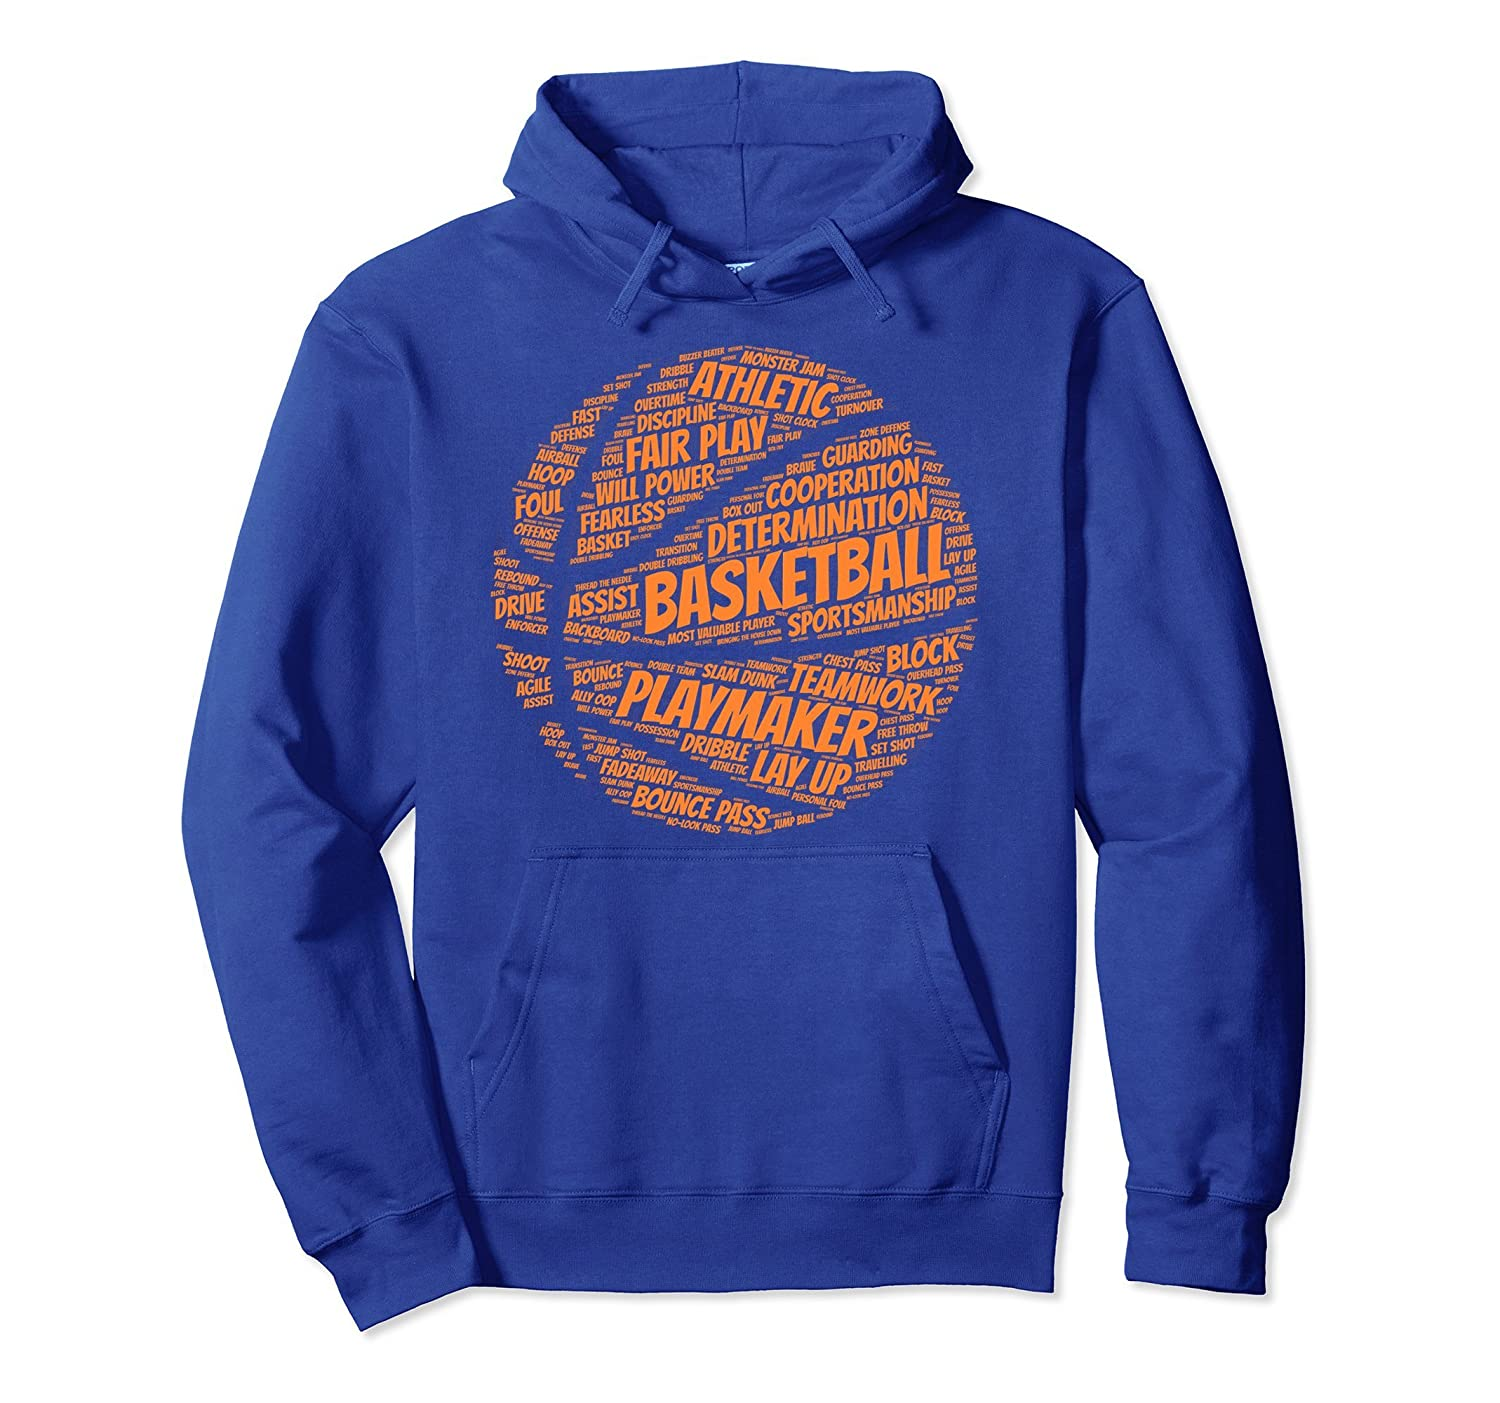 Basketball hoodie gift for boys, girls, men and women-alottee gift